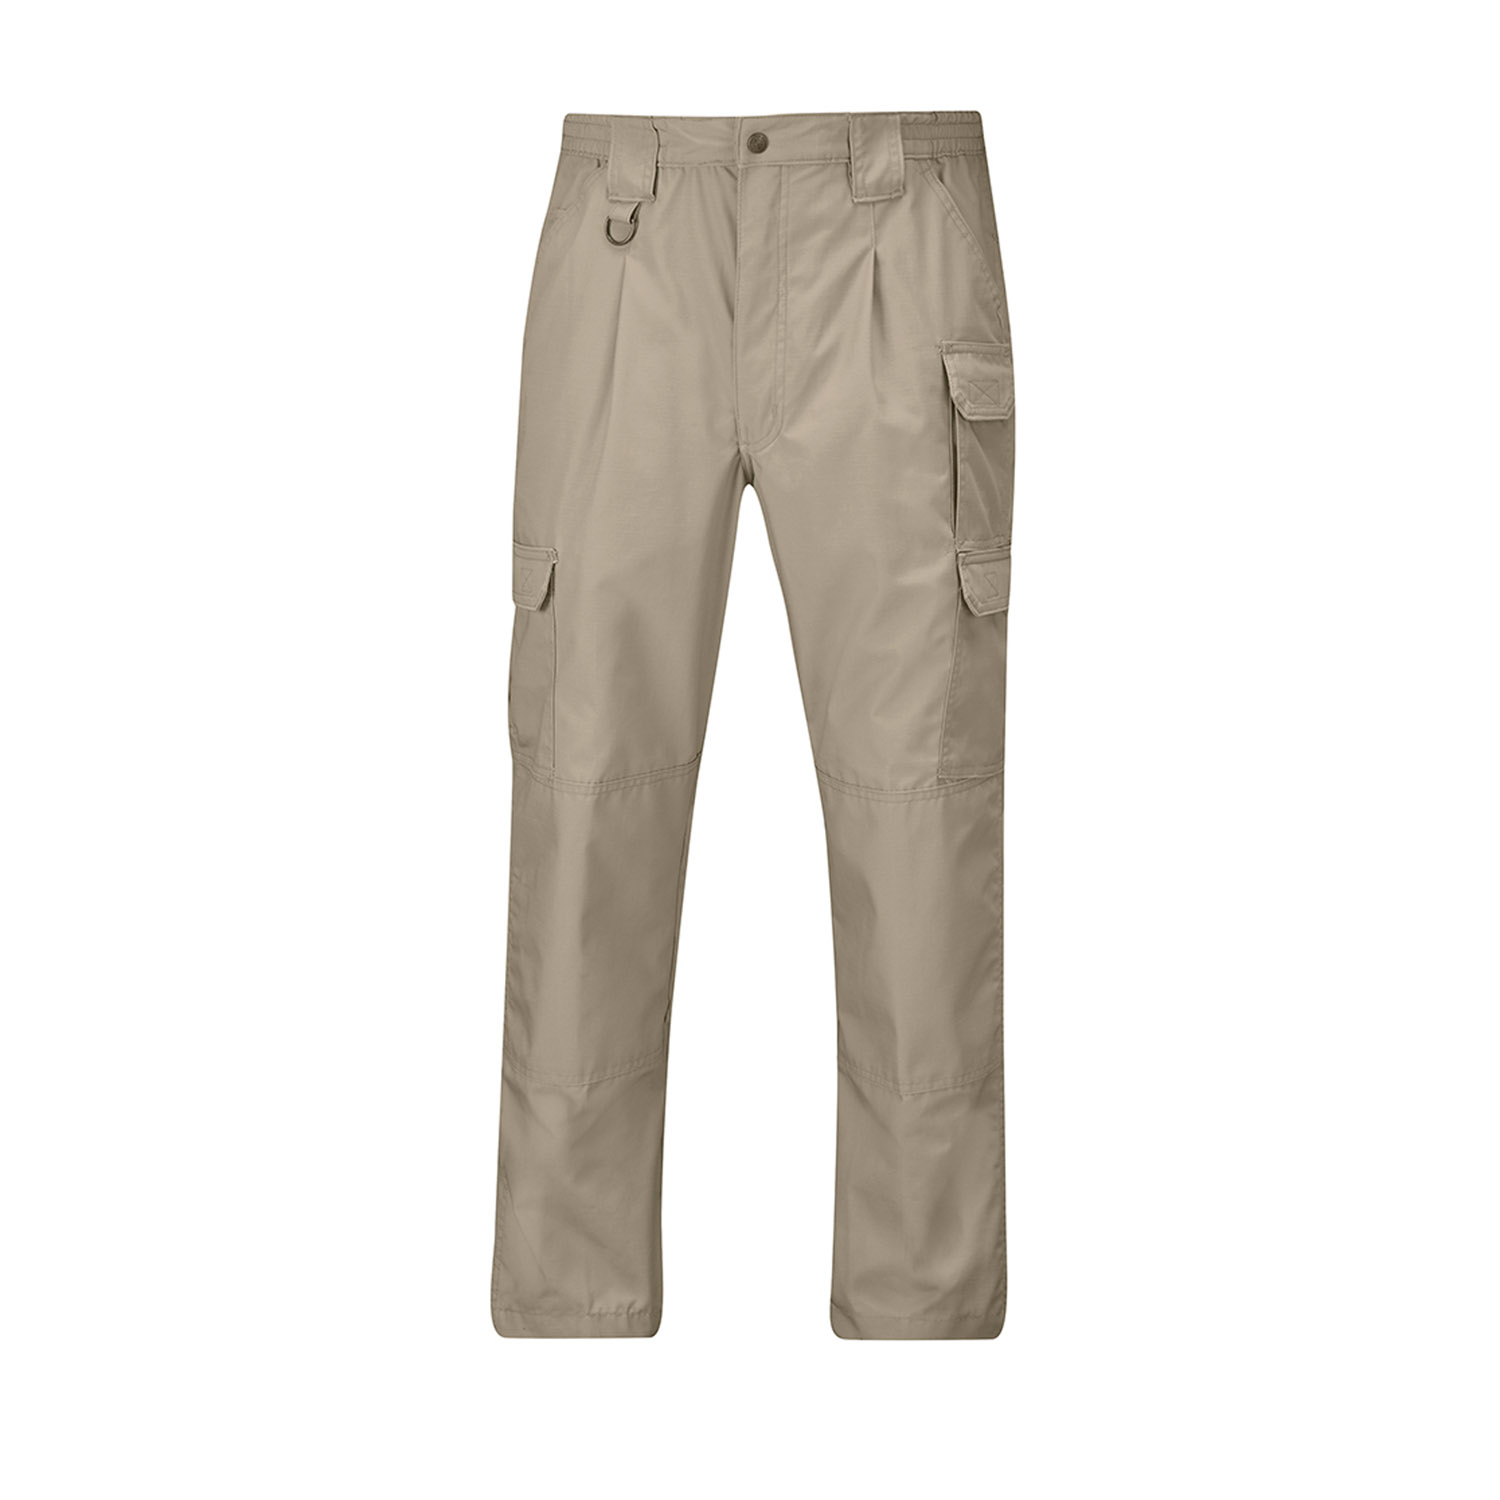 Propper Lightweight Tactical Trousers fbb0d51bcf59